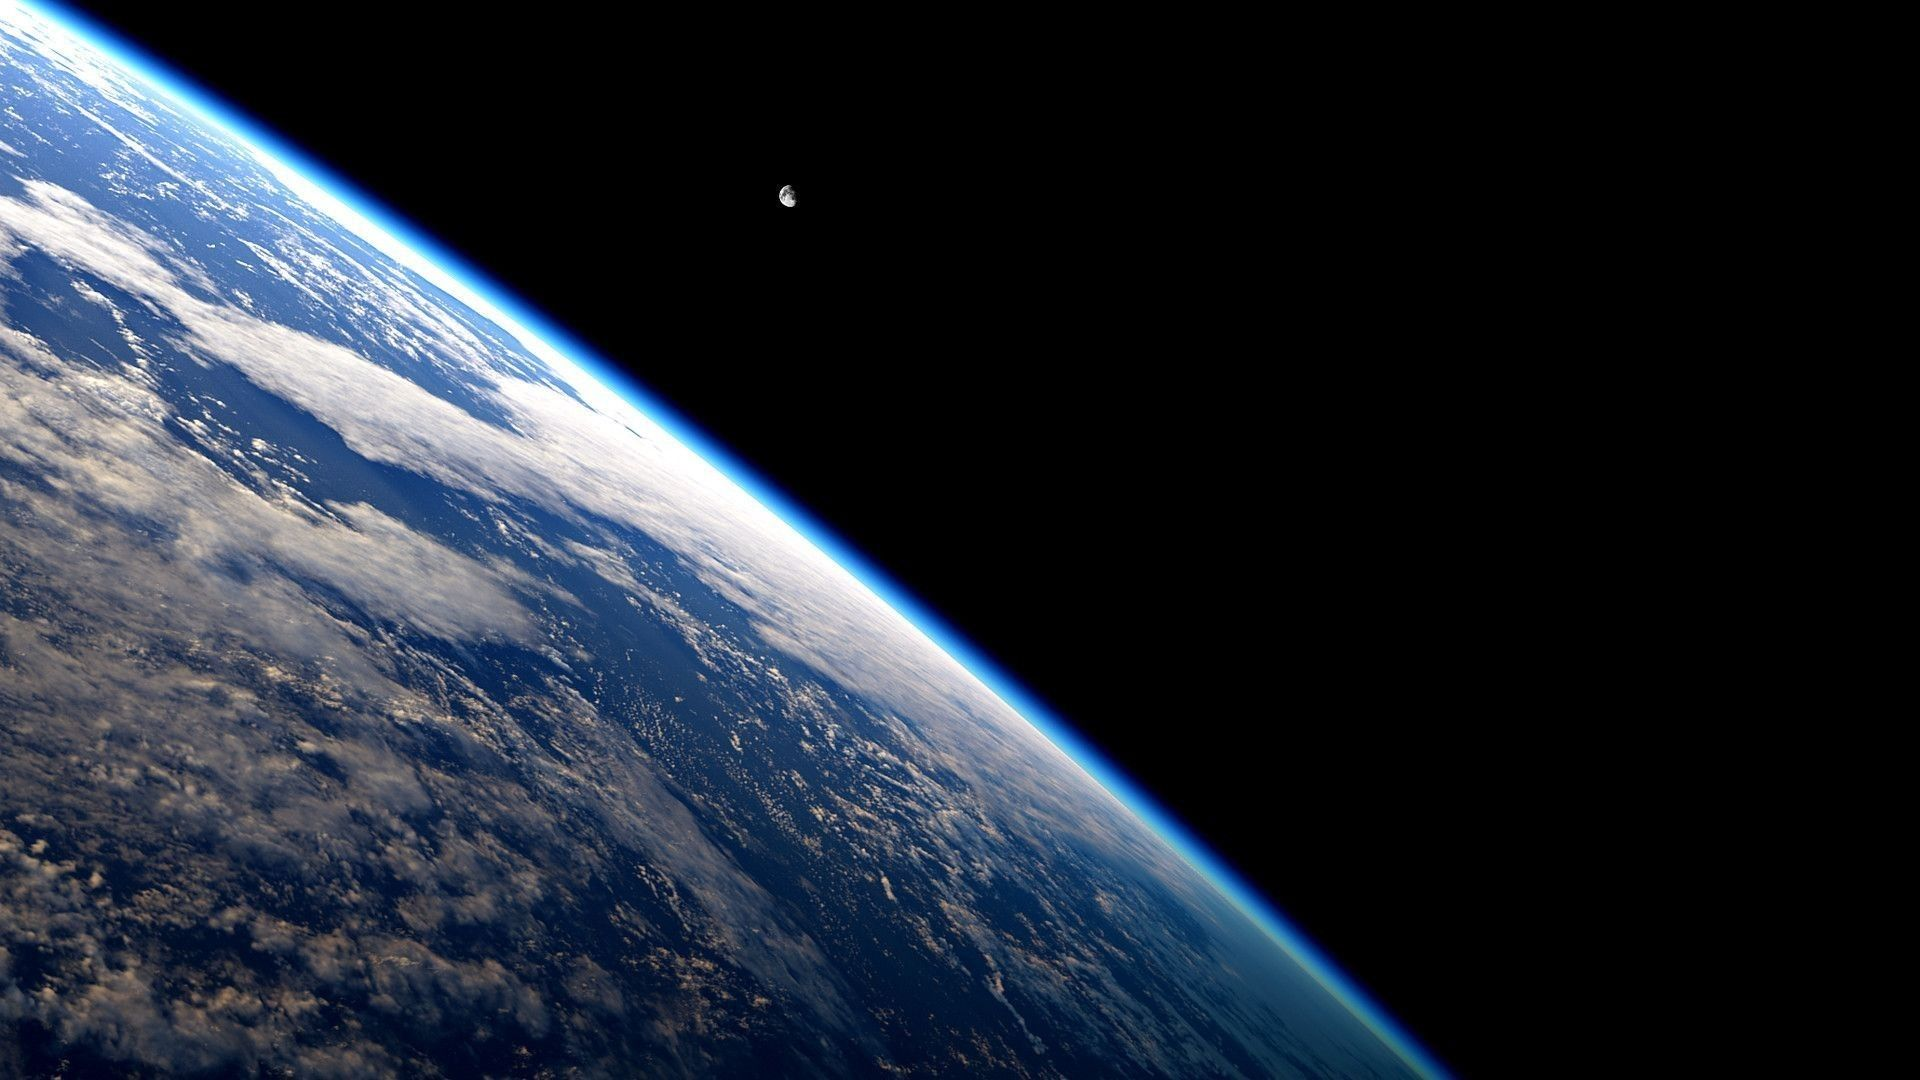 Res 1920x1080 Earth Wallpaper Free Desktop 8 Hd Wallpapers Space For Everyone Project Pinterest In 2020 Wallpaper Earth Wallpaper Space Planets Wallpaper